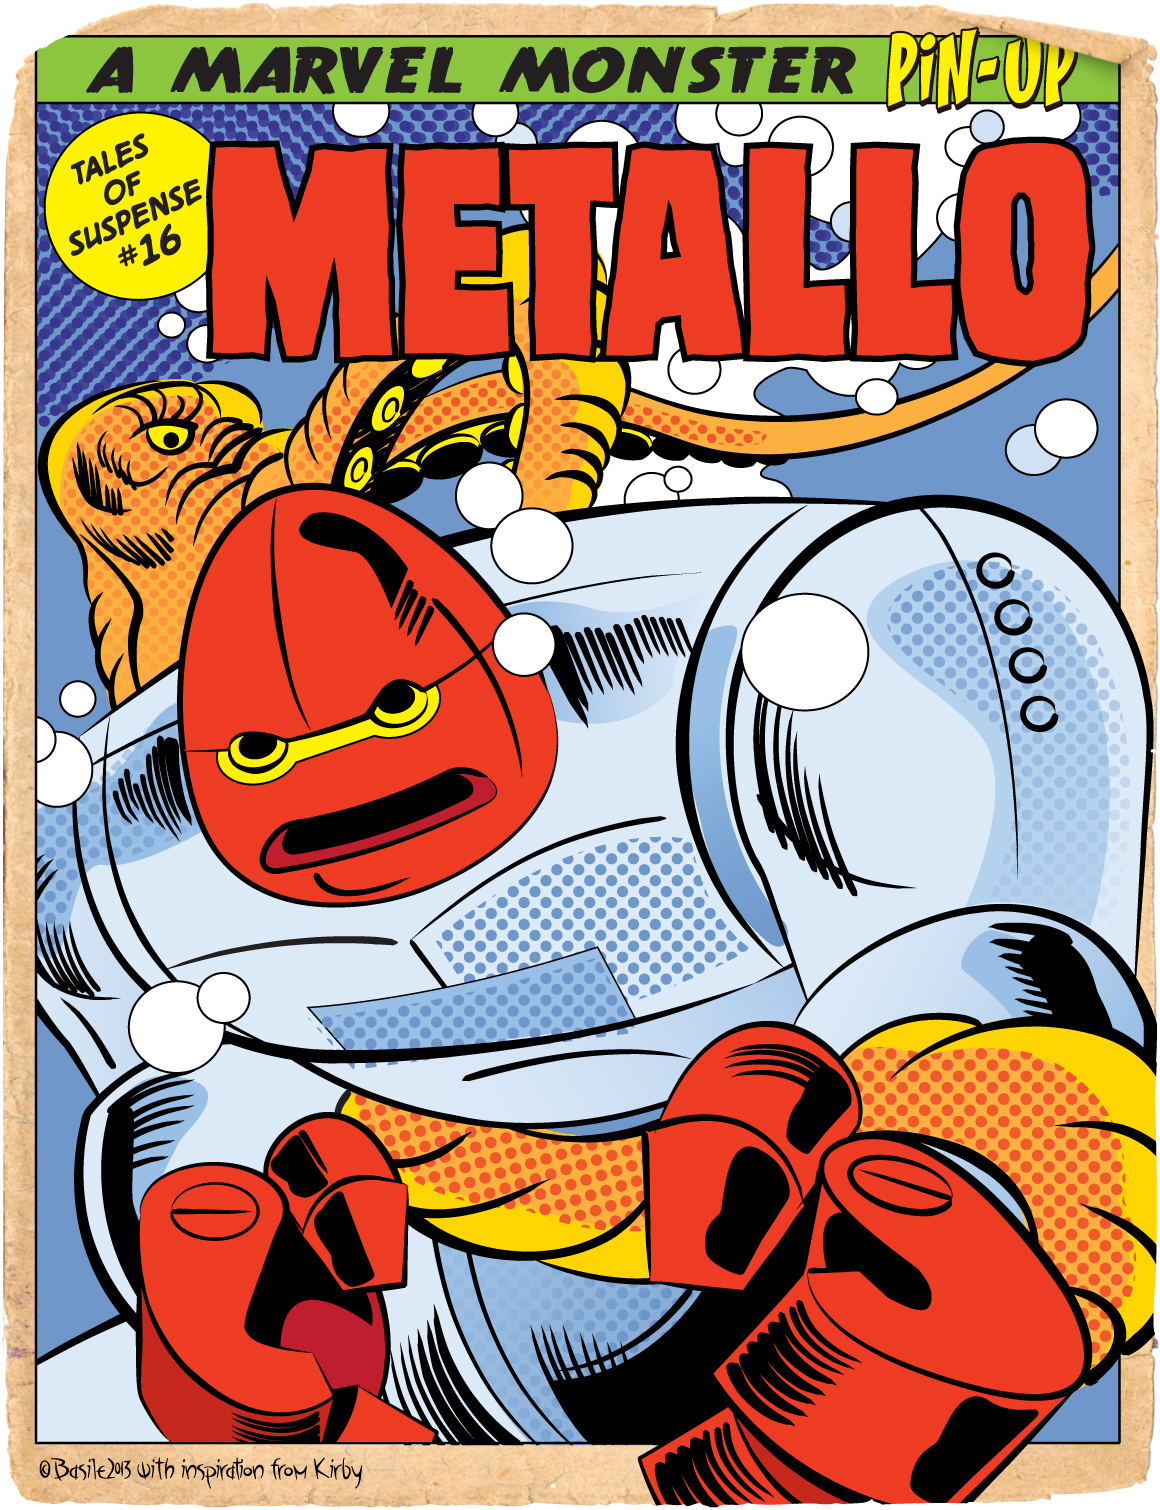 TALES OF SUSPENSE METALLO